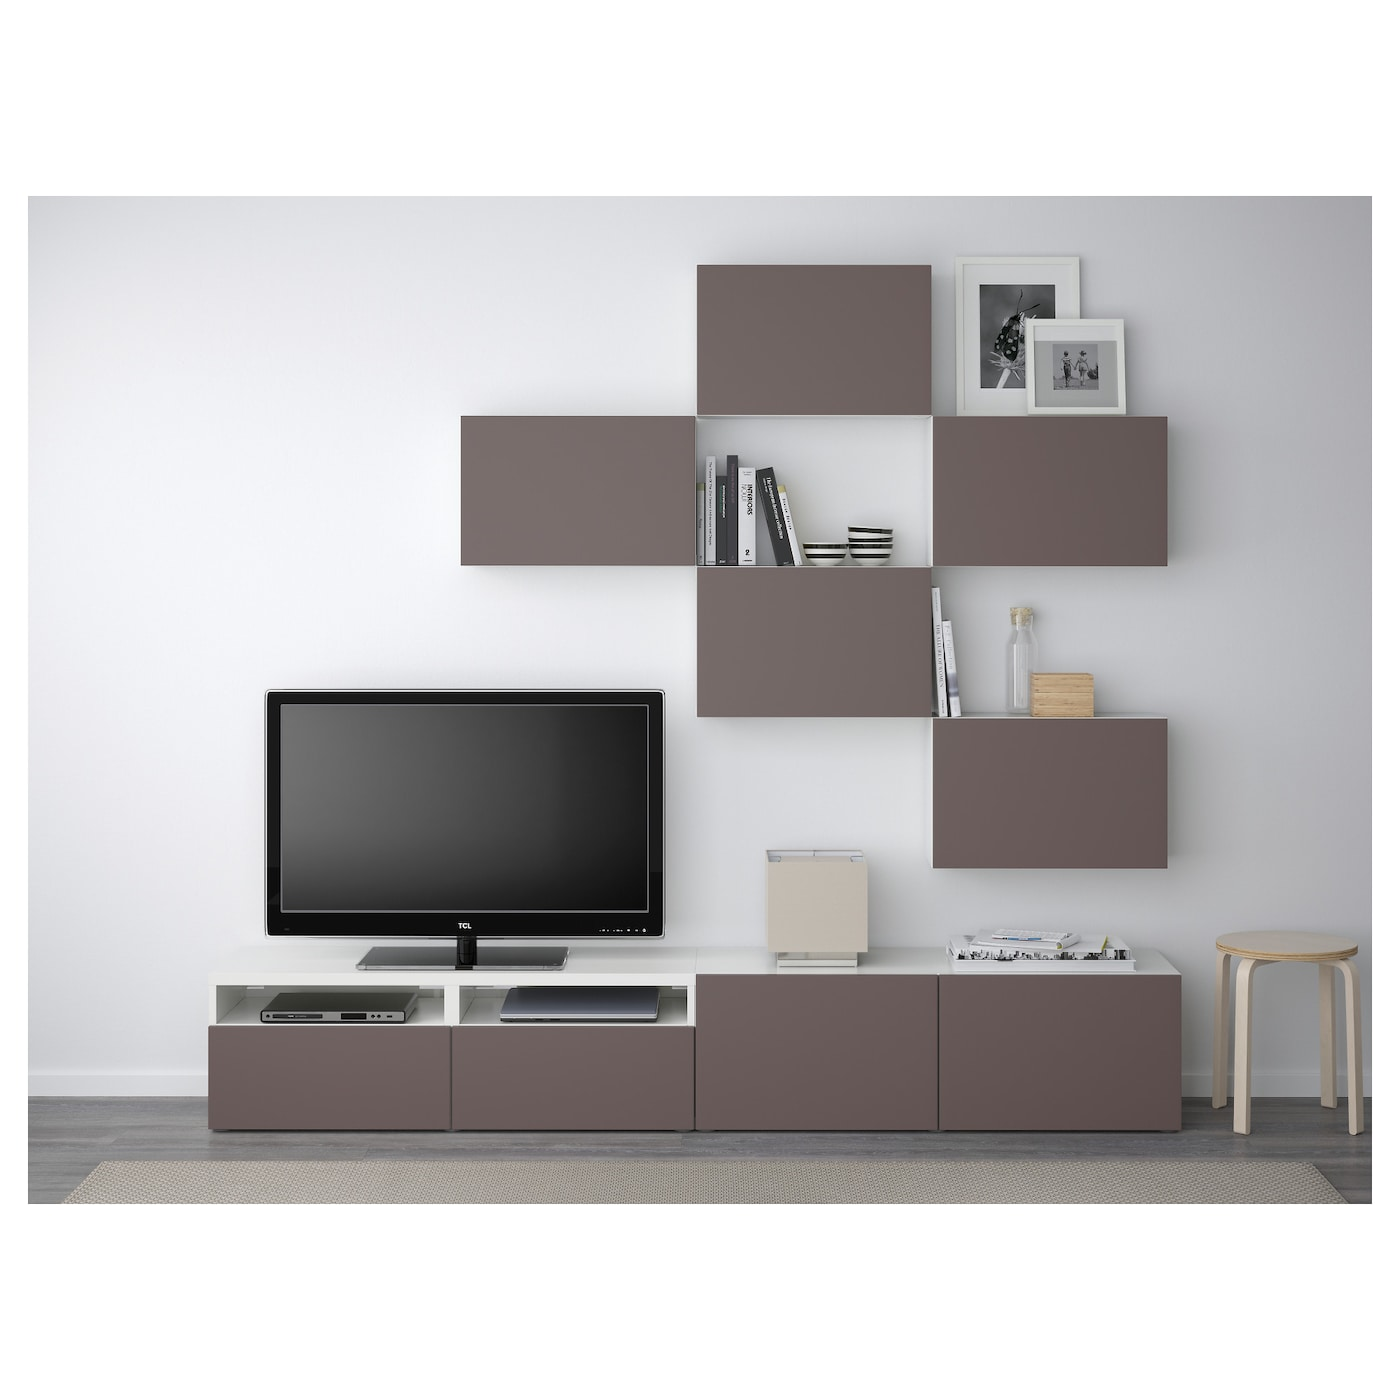 Best 197 Tv Storage Combination White Valviken Dark Brown